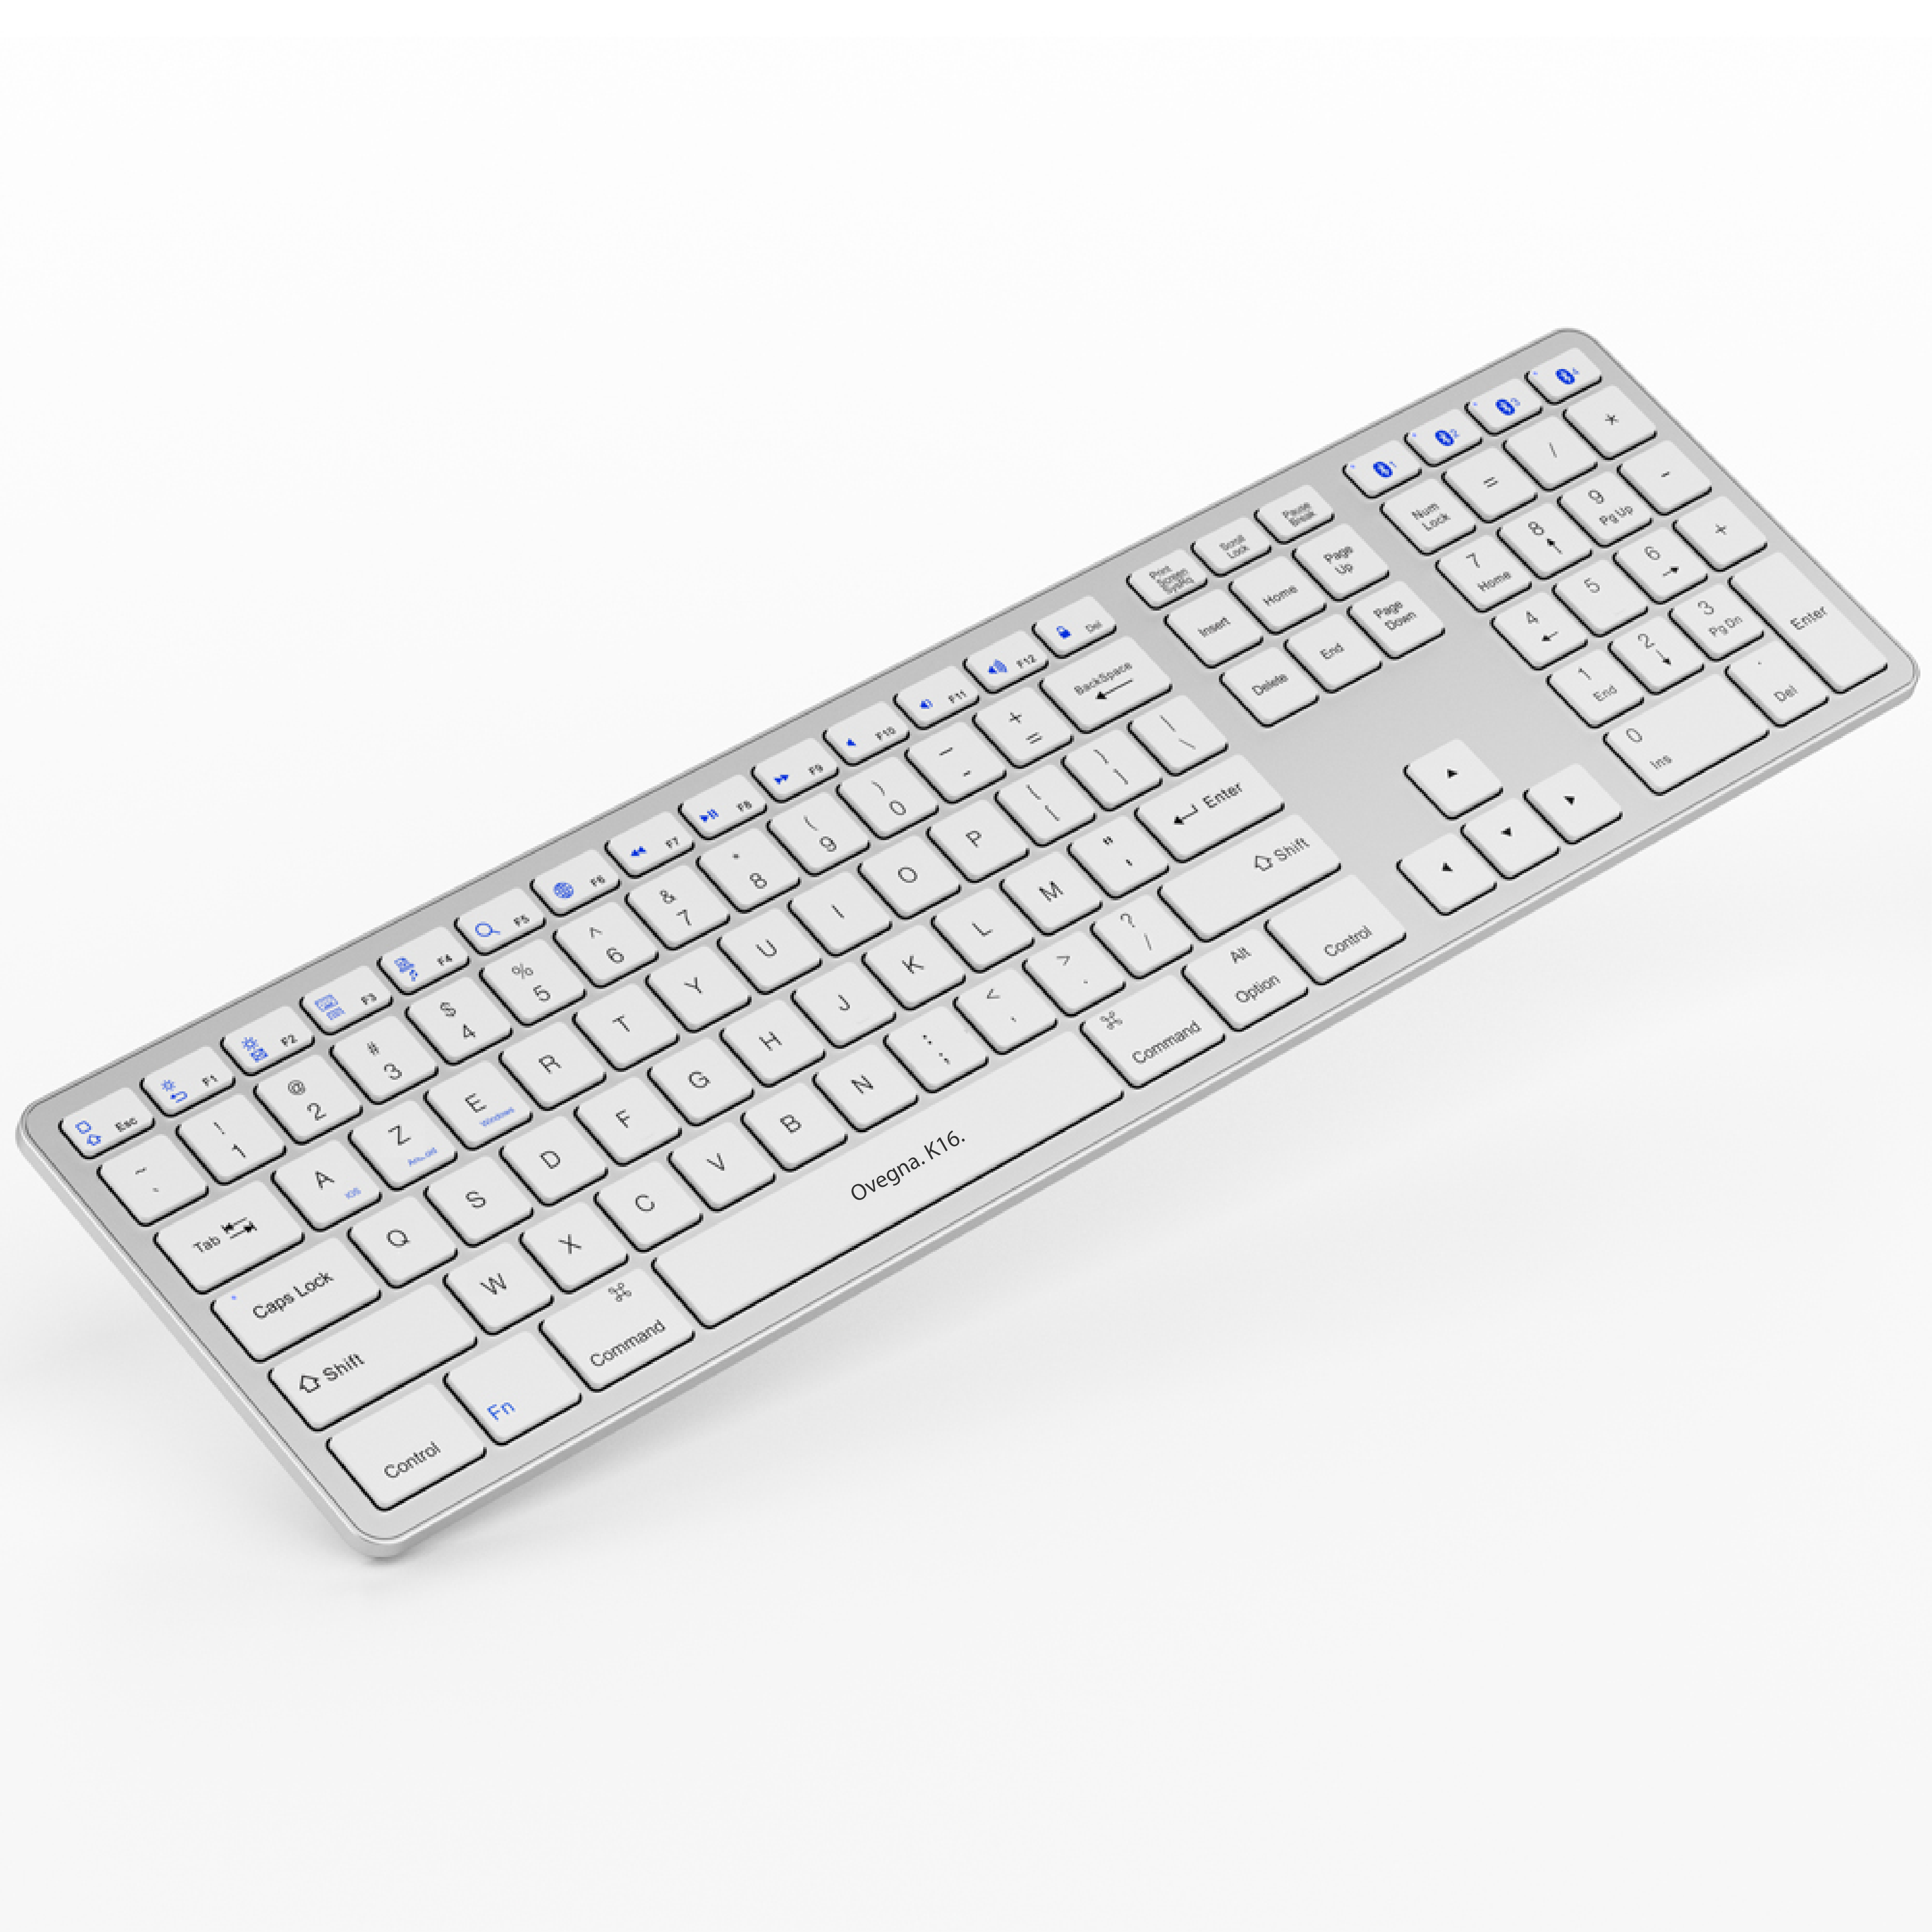 Ovegna K16: Keyboard AZERTY Ultra Thin Keyboard, 4 in 1 (Supports 4 Bluetooth devices simultaneously), Wireless, for Smartphone, Tablet, Huawei, iPhone, iPad, SmartTV, Computer, Android, iOS, Windows